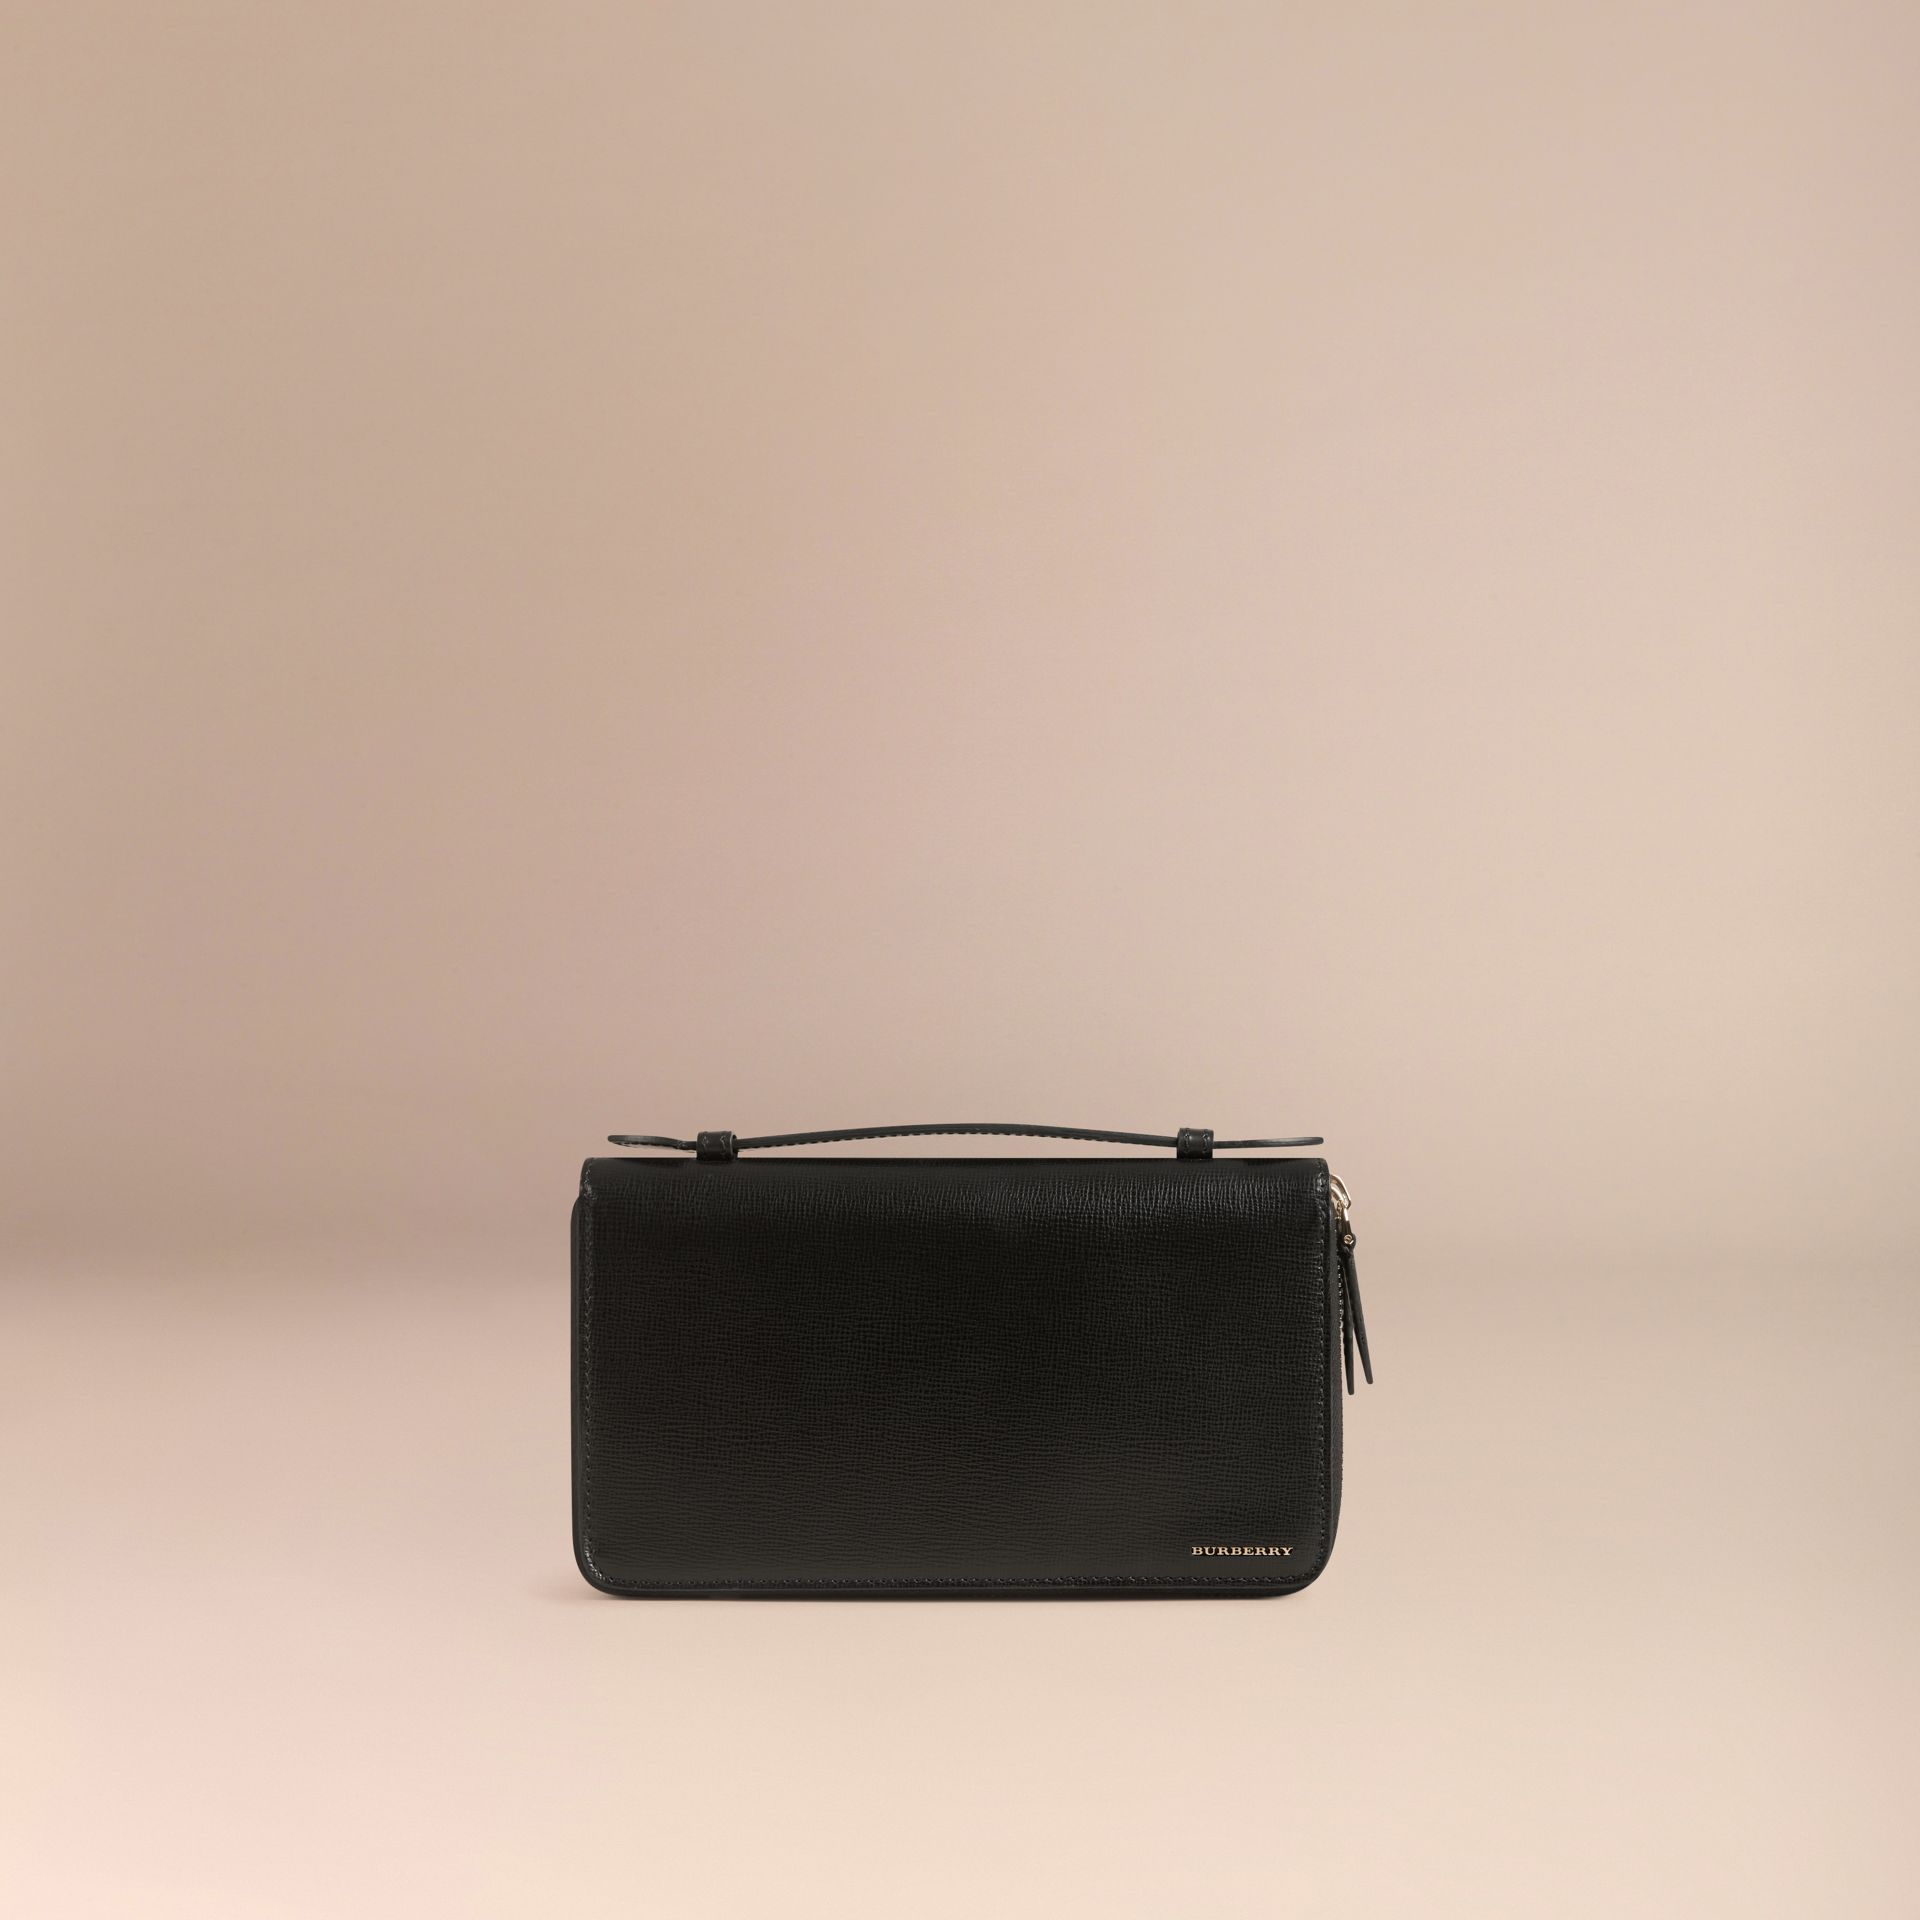 Black London Leather Travel Wallet Black - gallery image 3